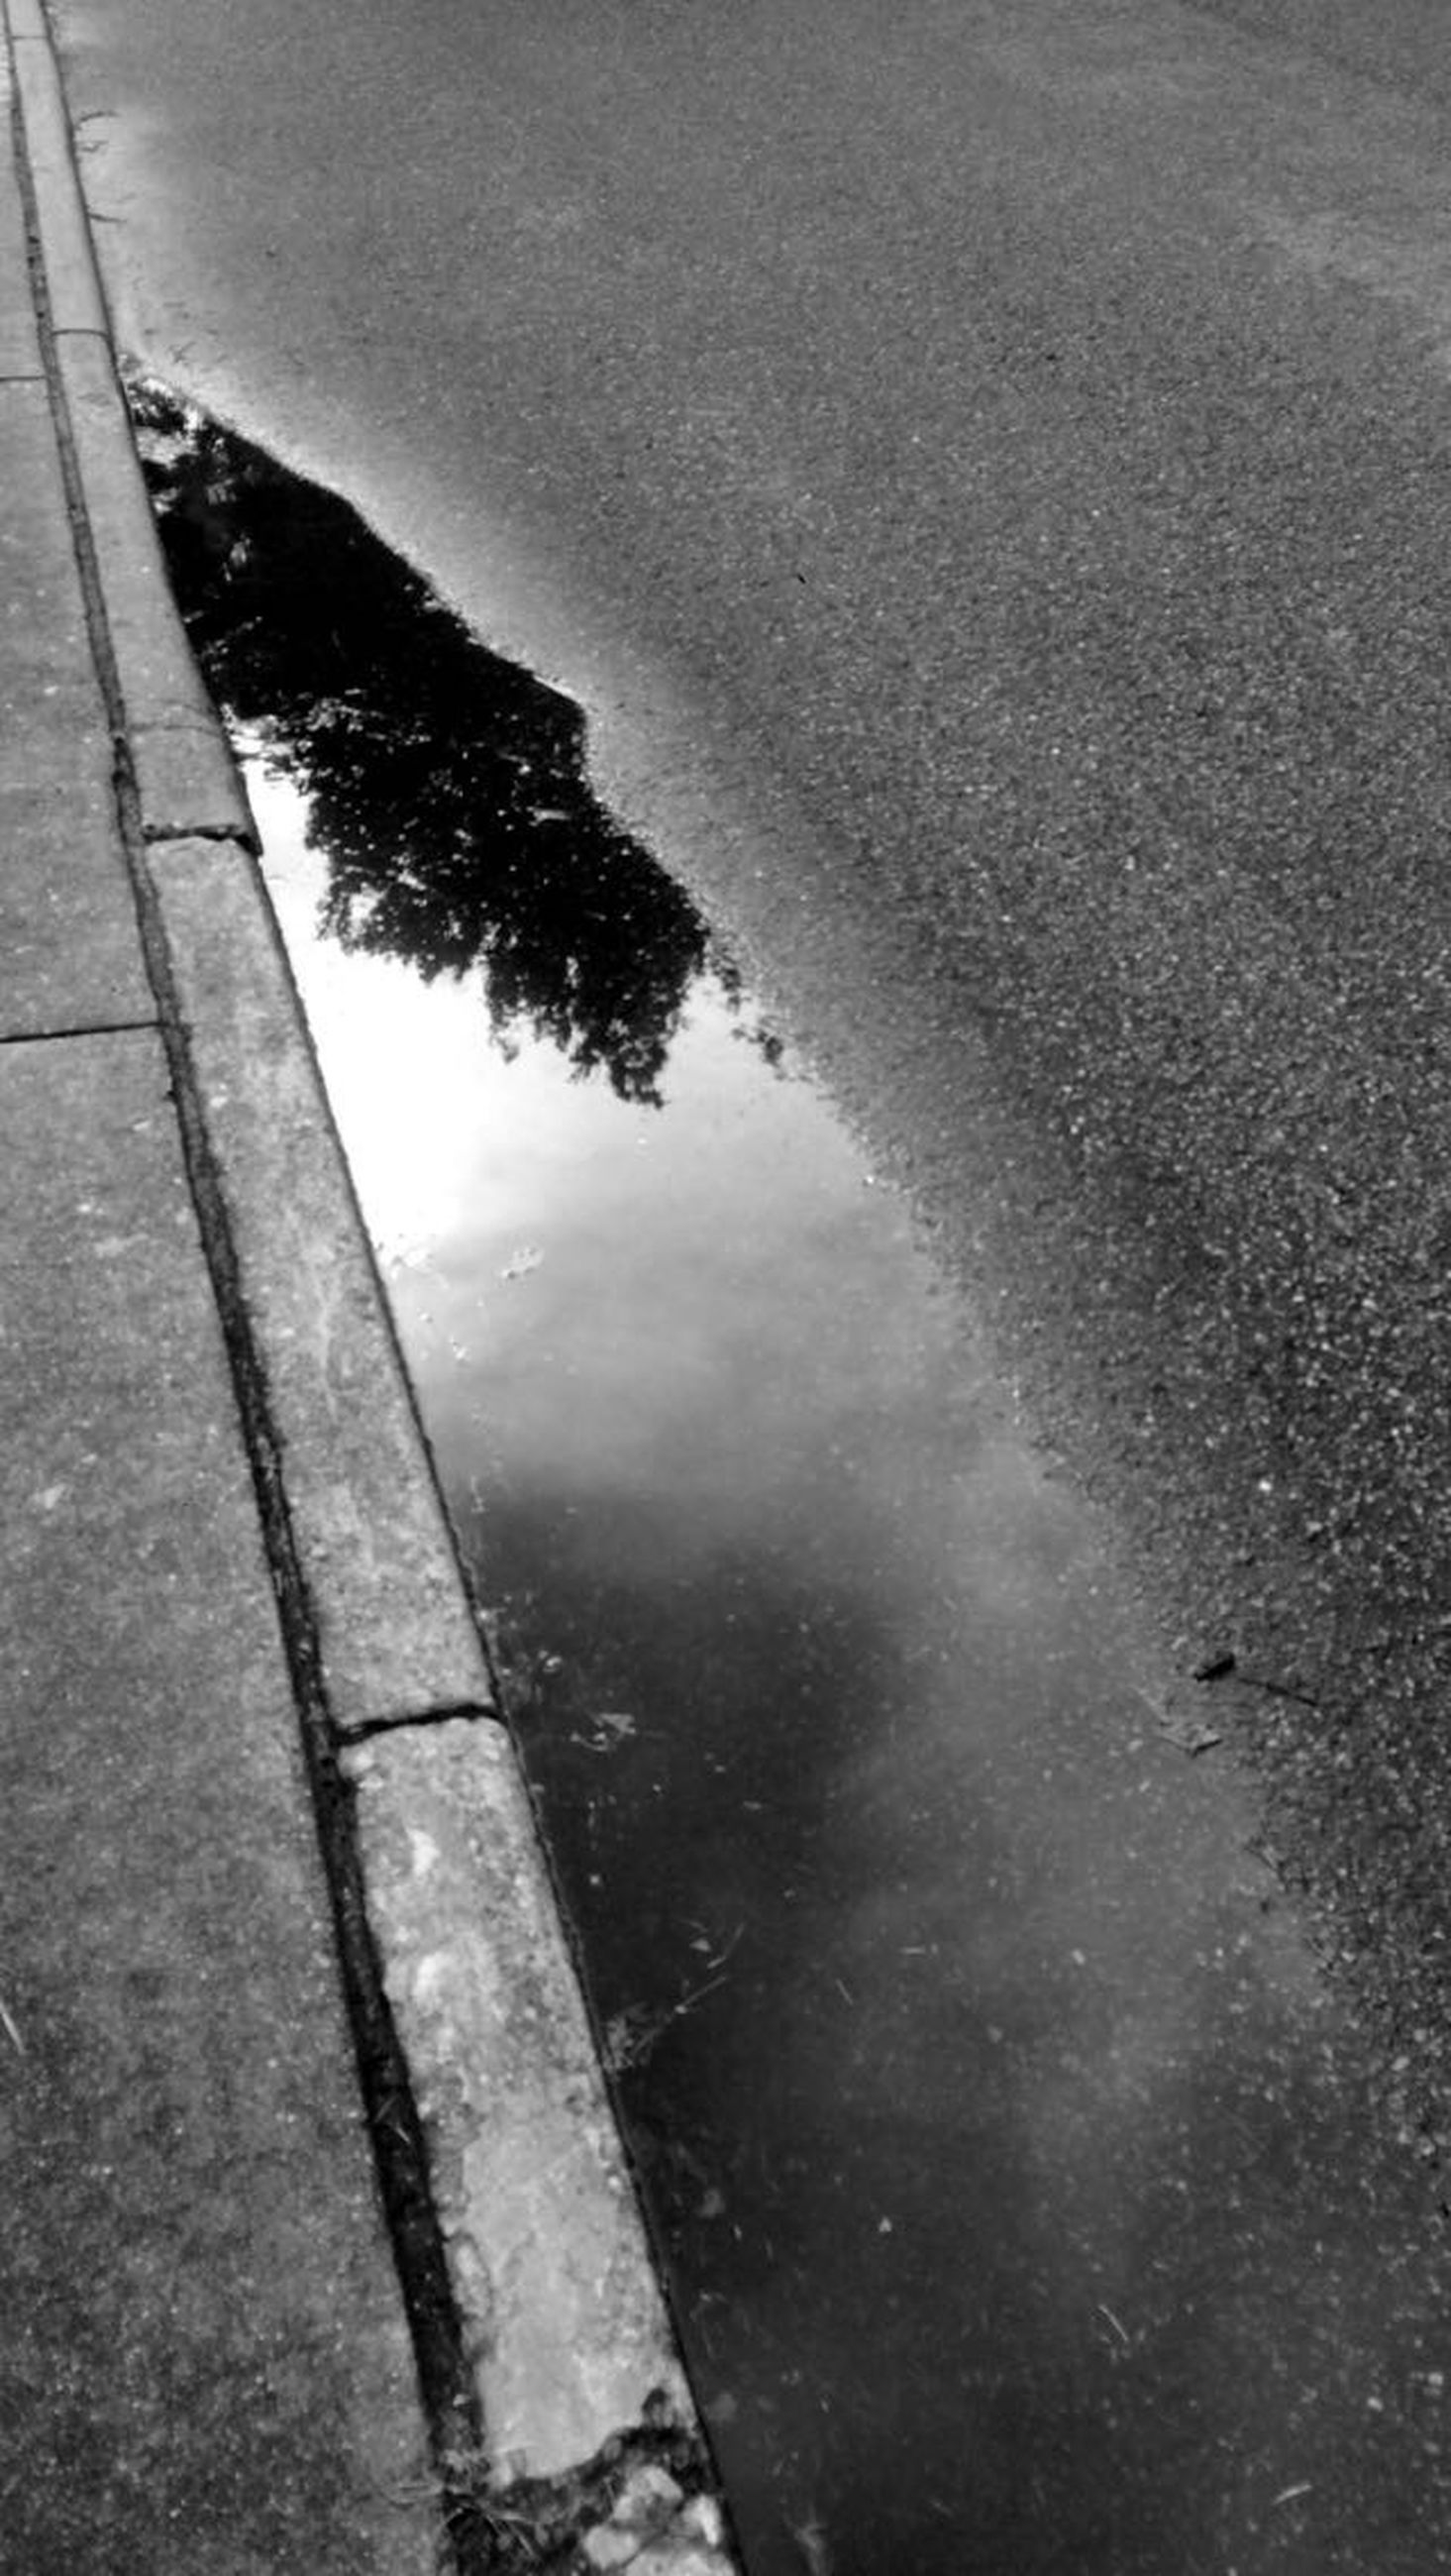 water, reflection, puddle, high angle view, tree, sky, nature, tranquility, wet, street, day, outdoors, road, sunlight, no people, shadow, sea, transportation, tranquil scene, lake